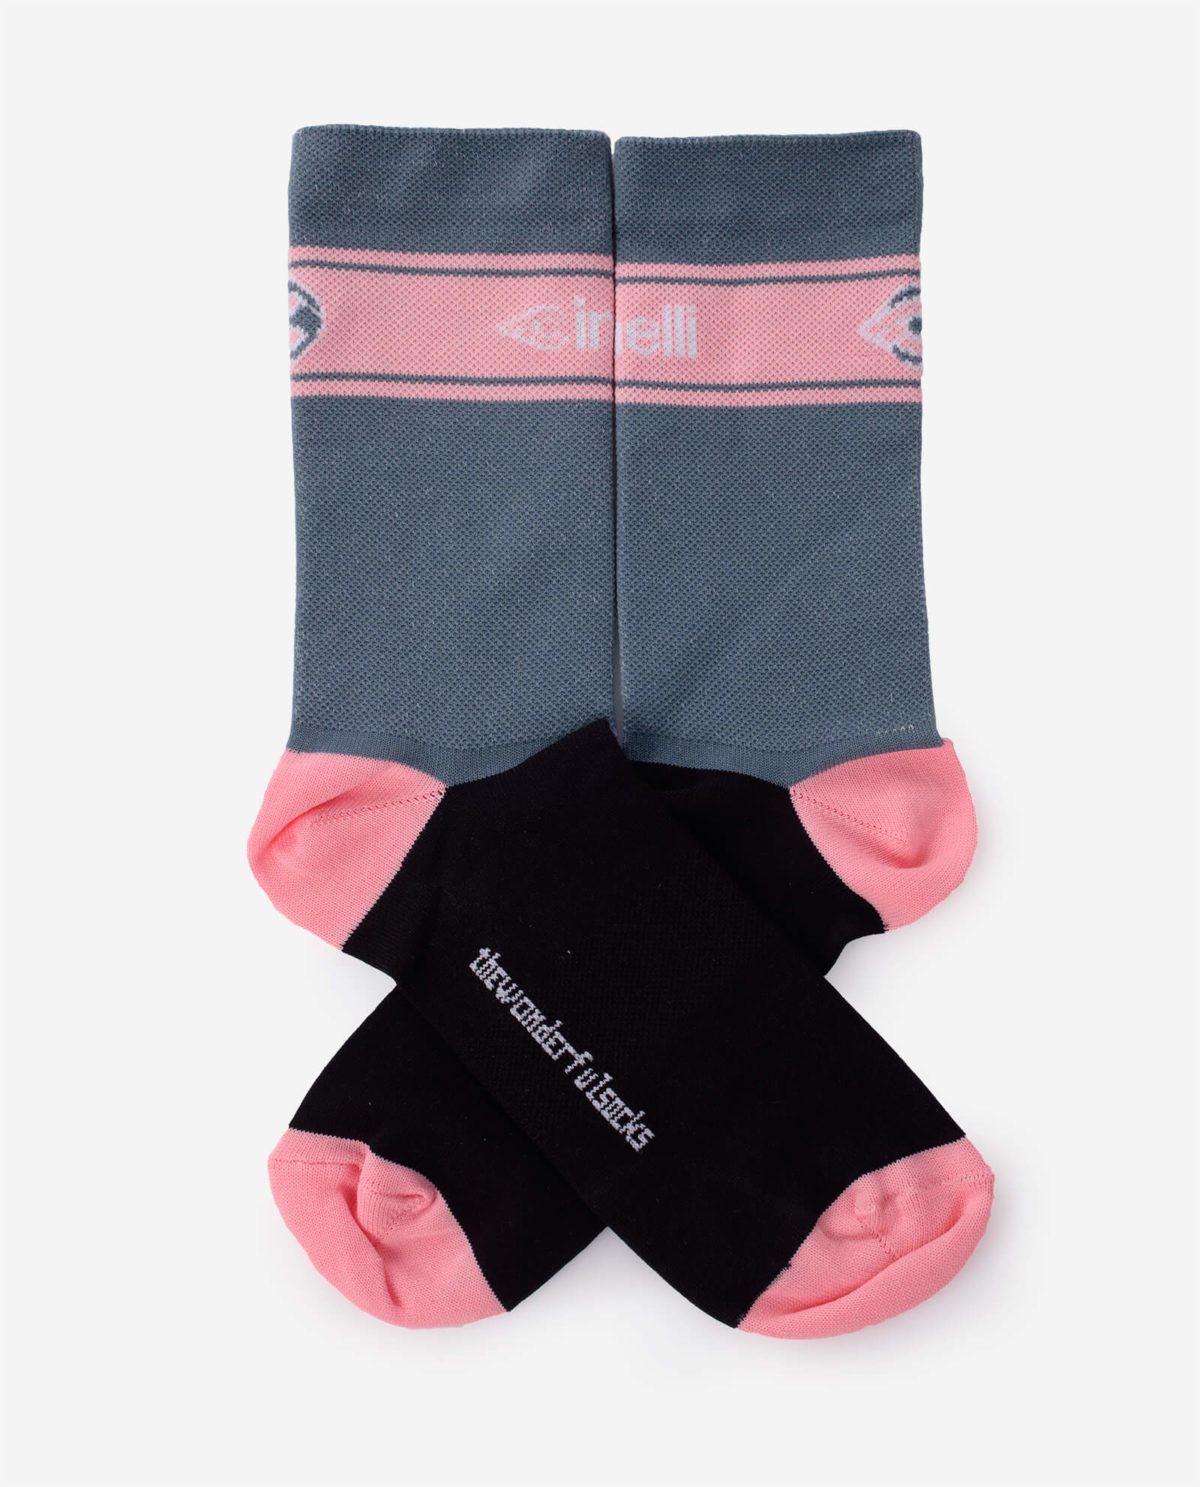 TWS x Cinelli Vigorosa Socks